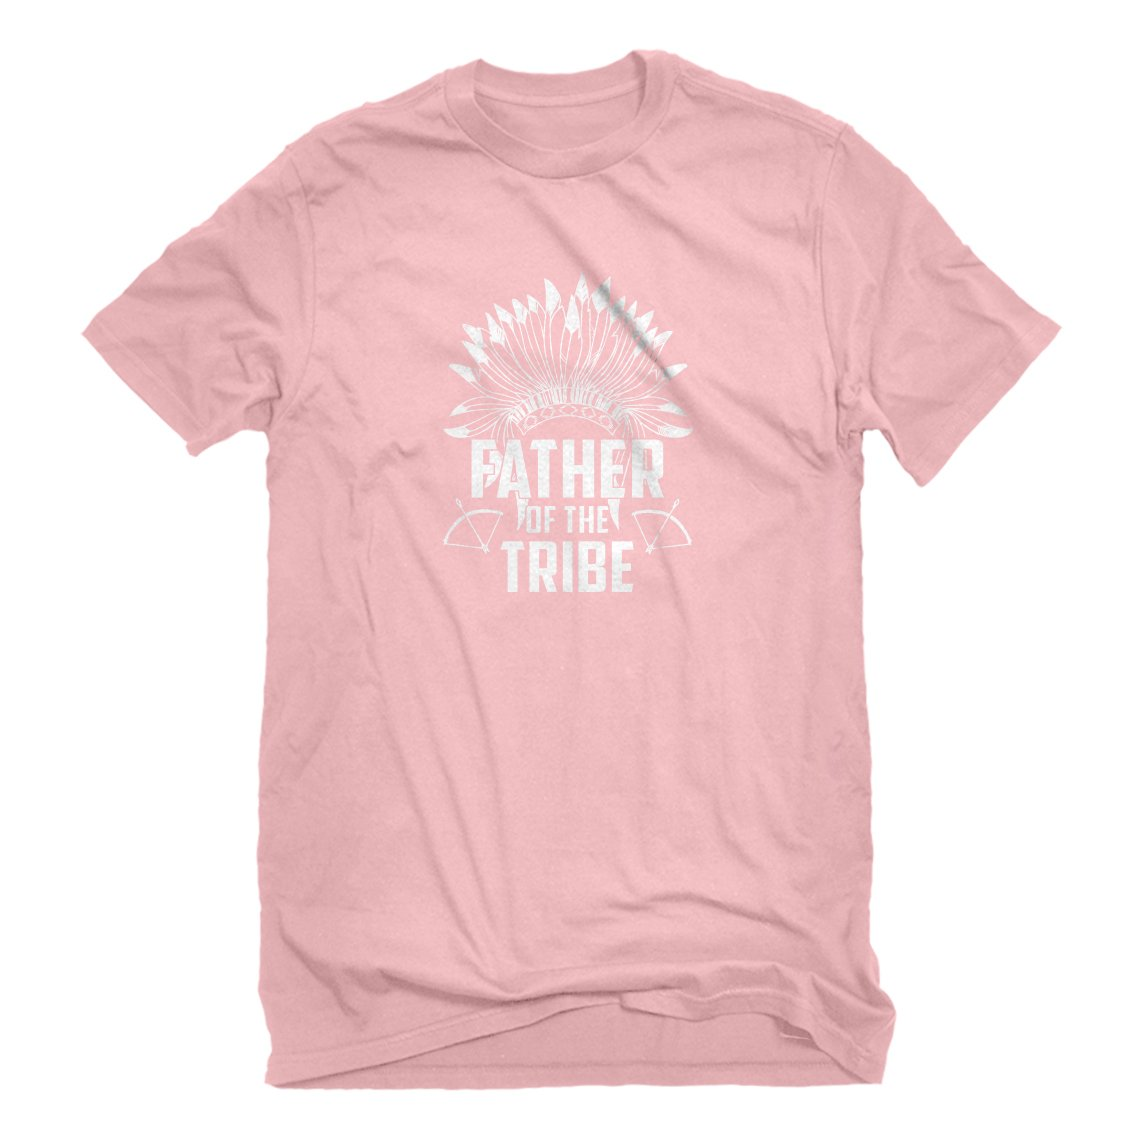 S Father Of The Tribe Tshirt